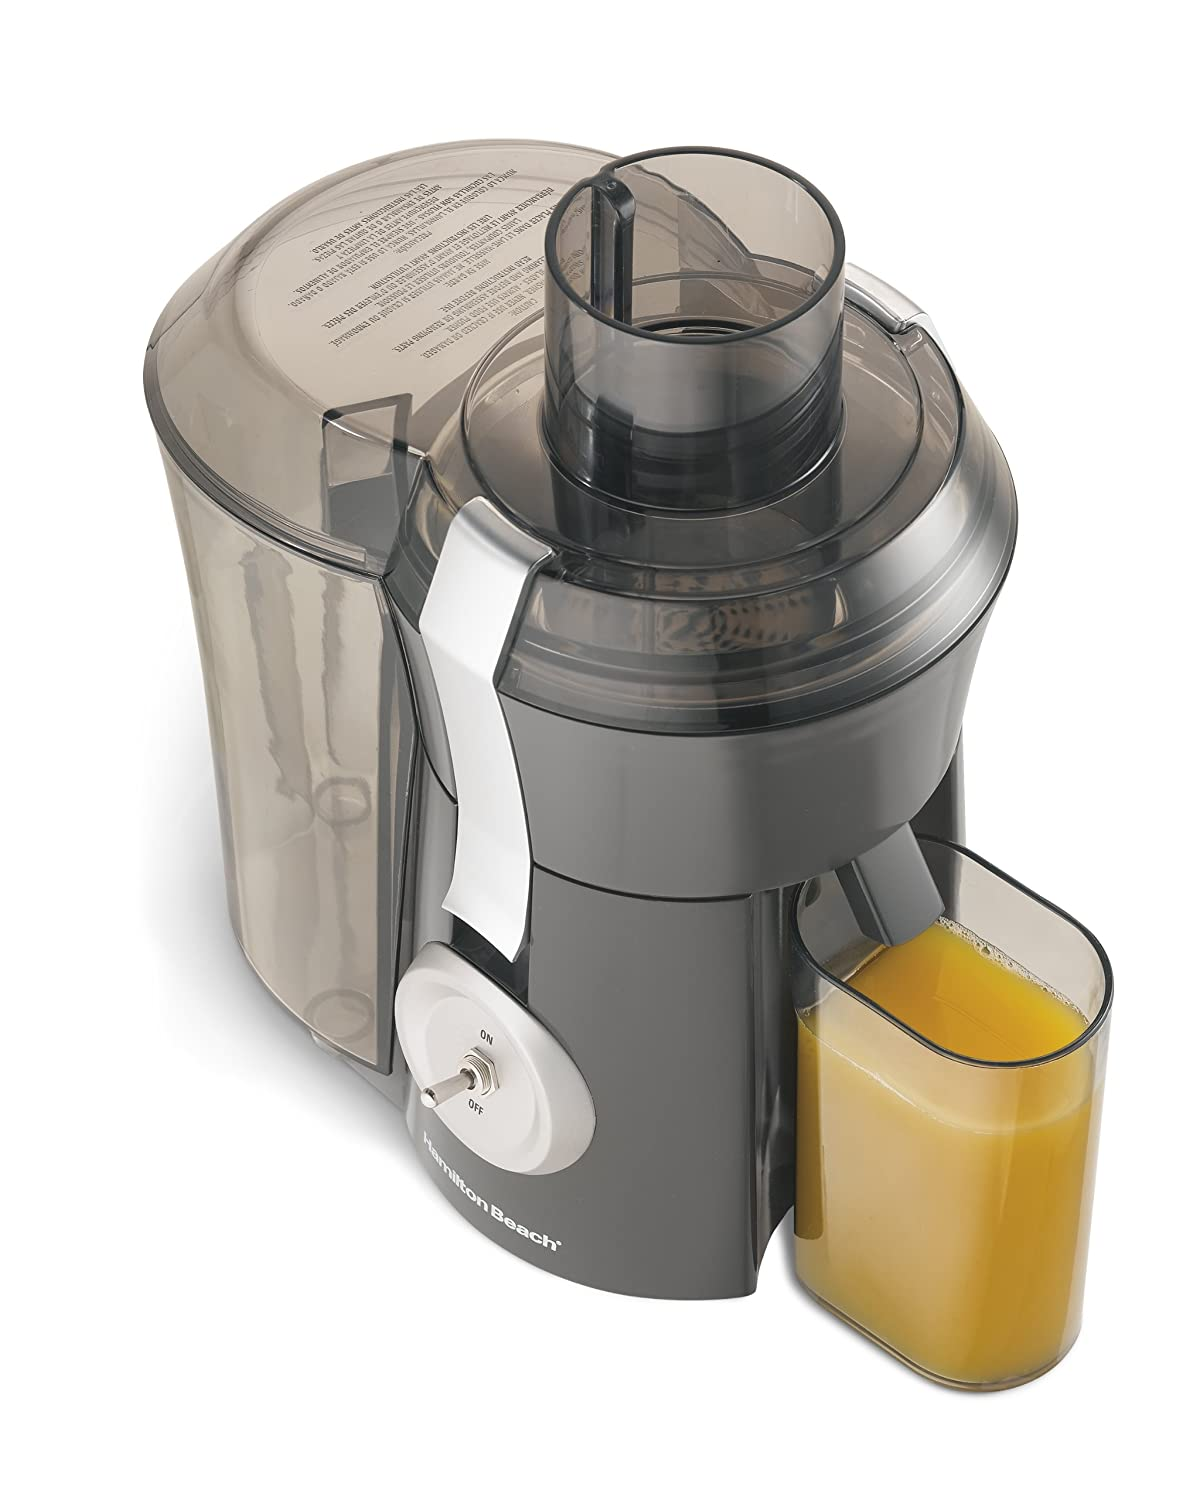 Hamilton Beach 67650A Juicer, Grey